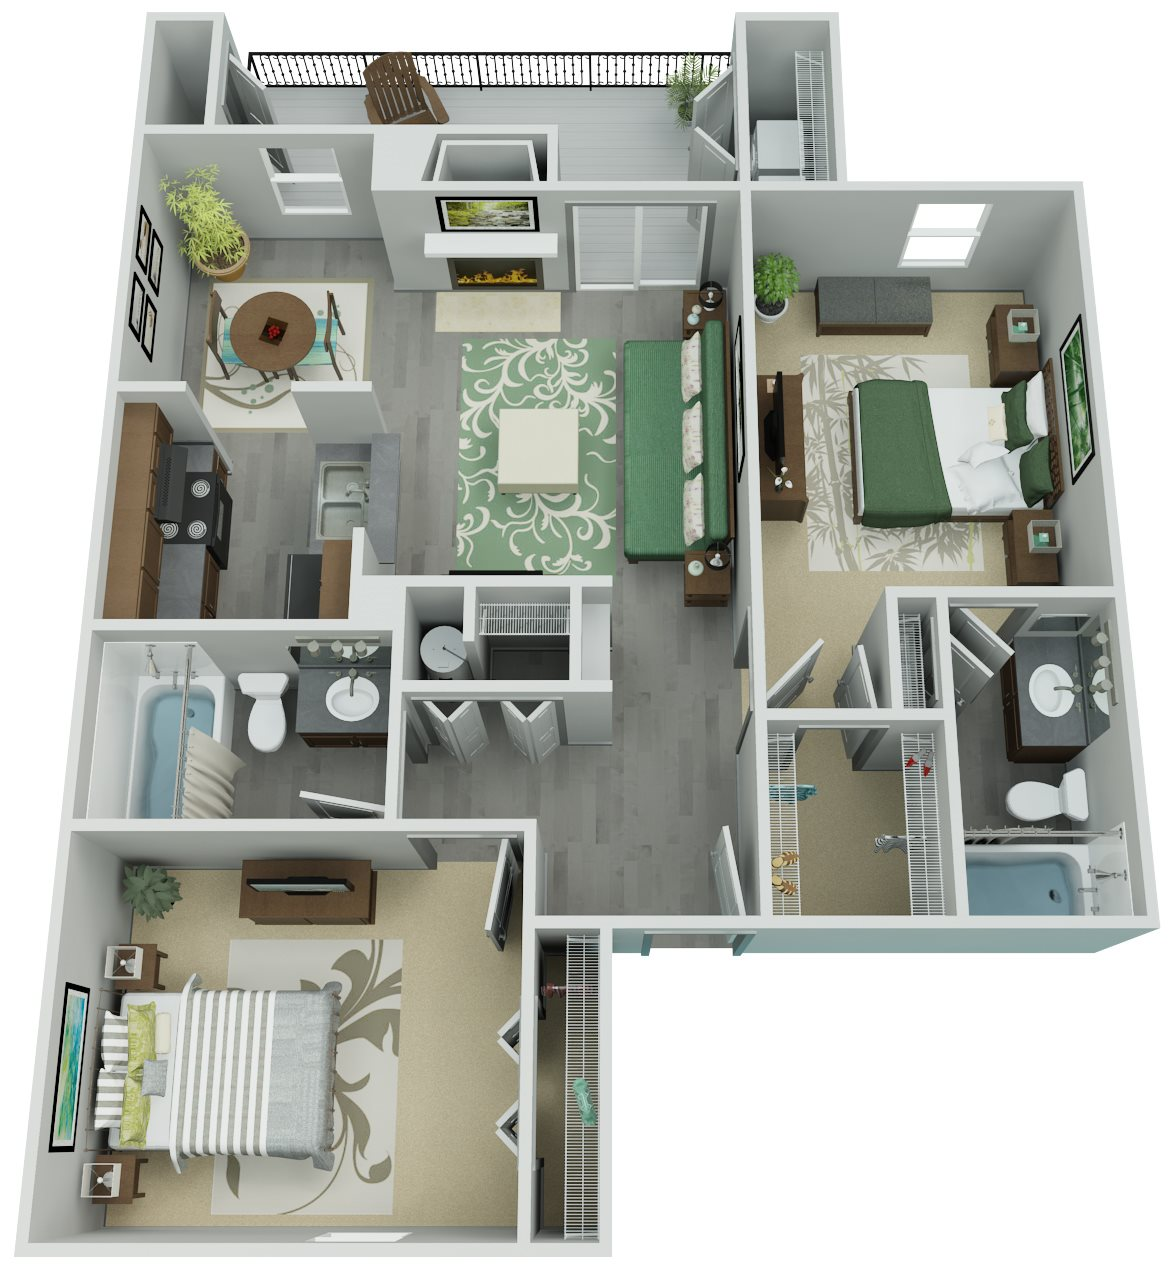 Trailpoint at The Woodlands Apartment Homes - 2 Bedroom 2 Bath Apartment